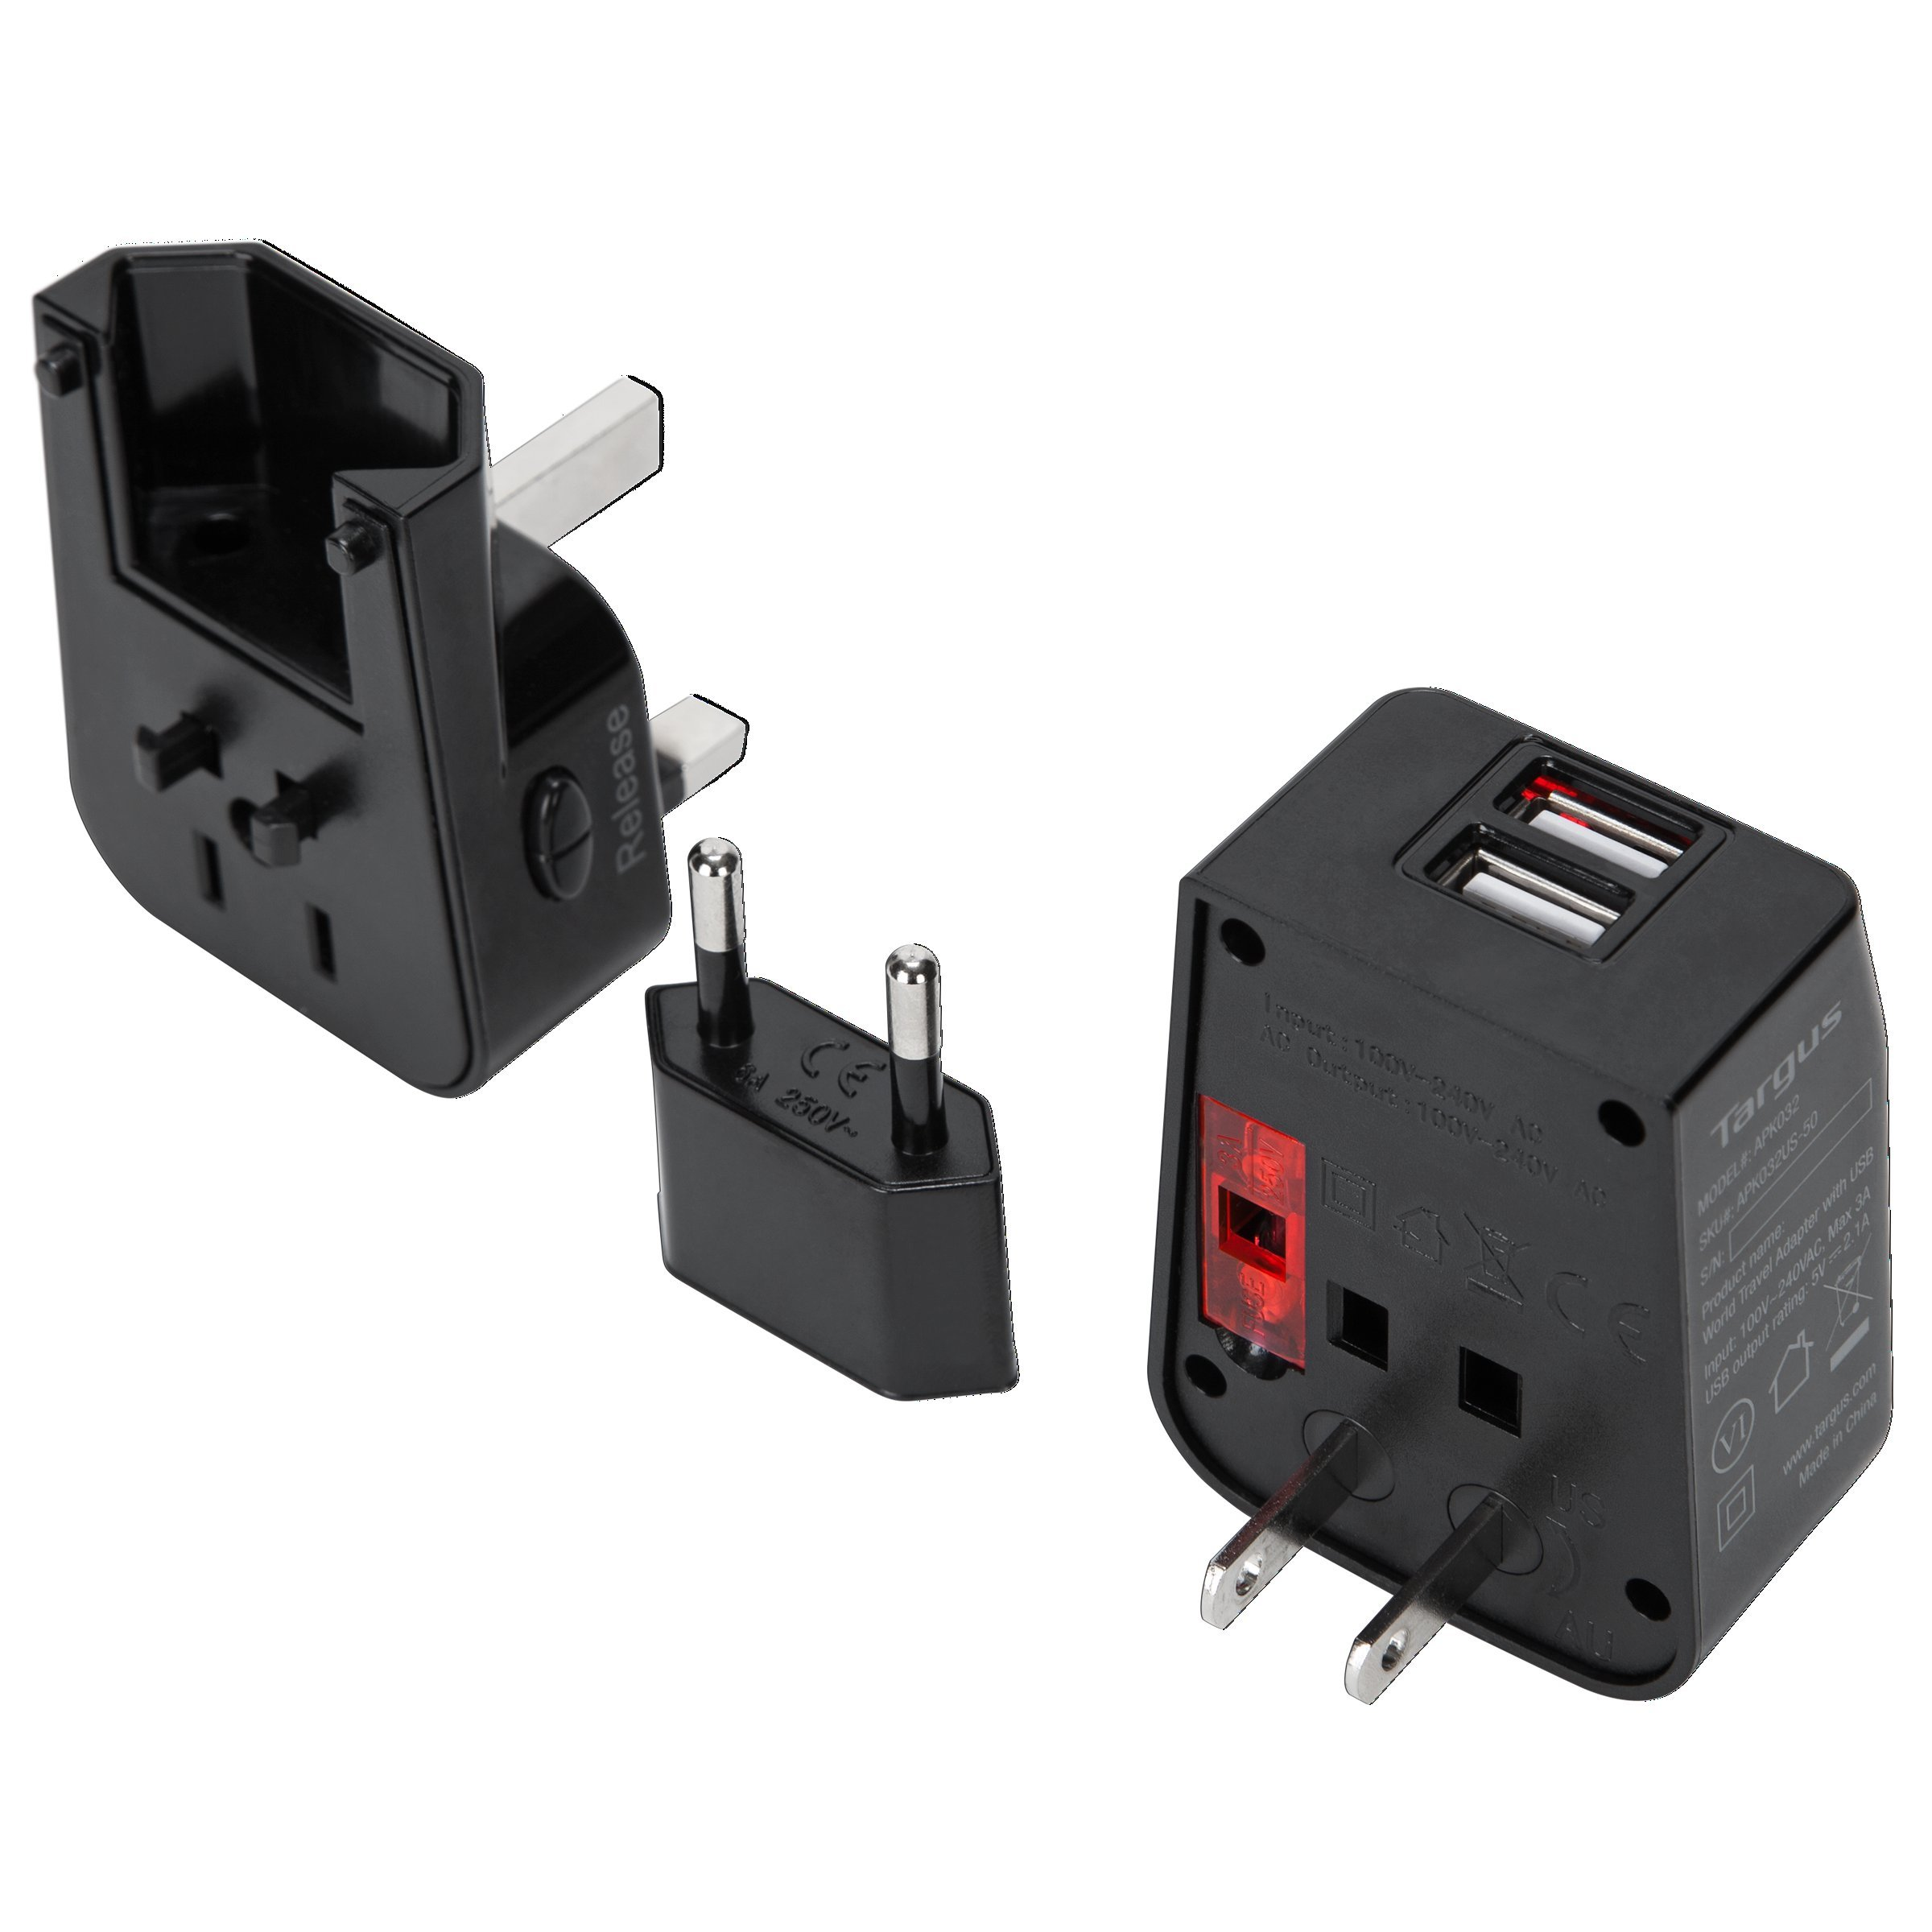 Targus World Travel Power Adapter with Dual USB Charging Ports for Laptops, Phones, Tablets, or Other Mobile Devices (APK032US) by Targus (Image #2)